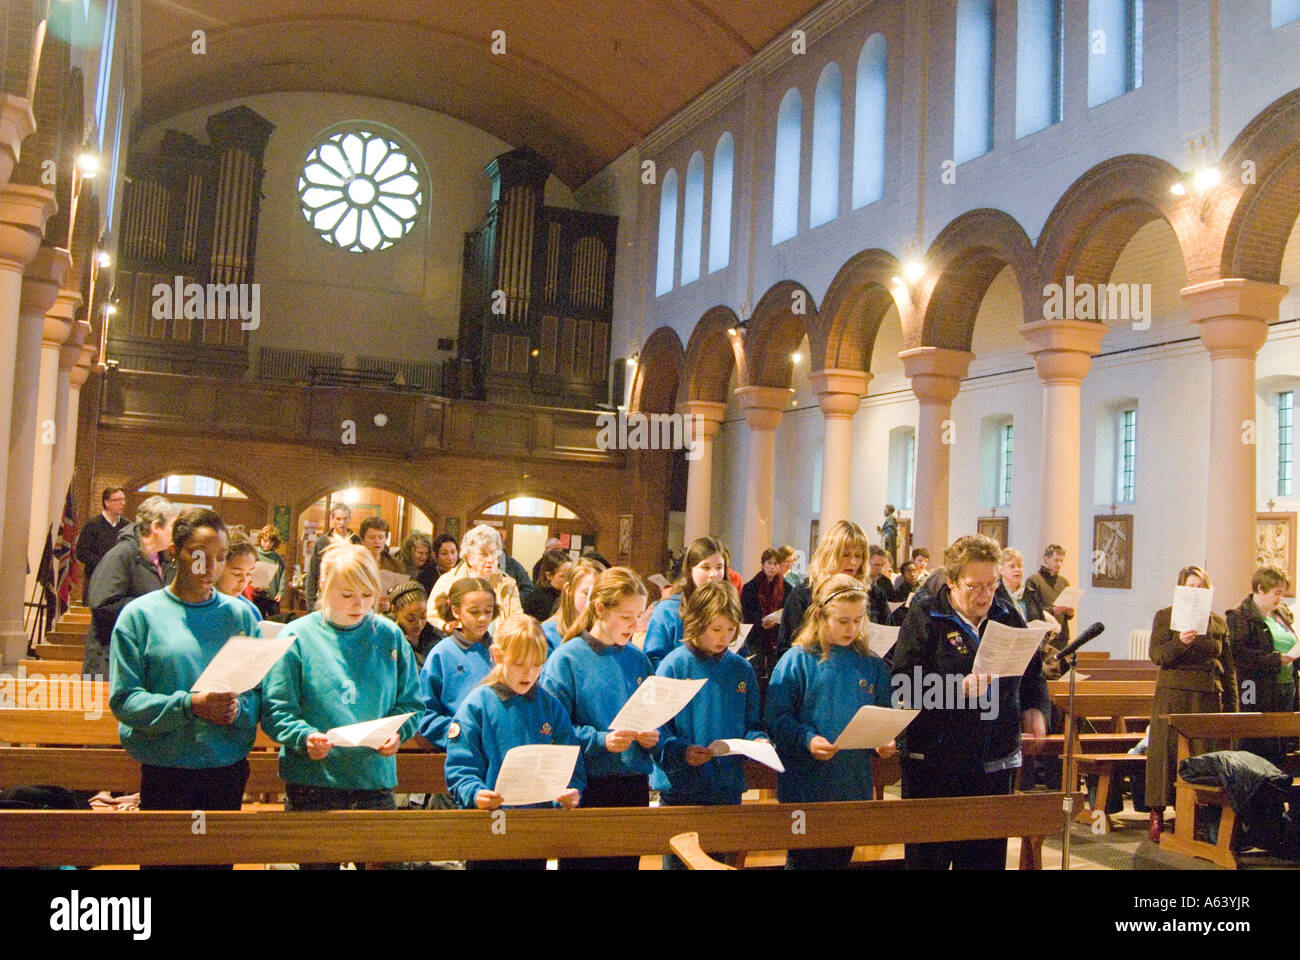 Hymns High Resolution Stock Photography and Images - Alamy